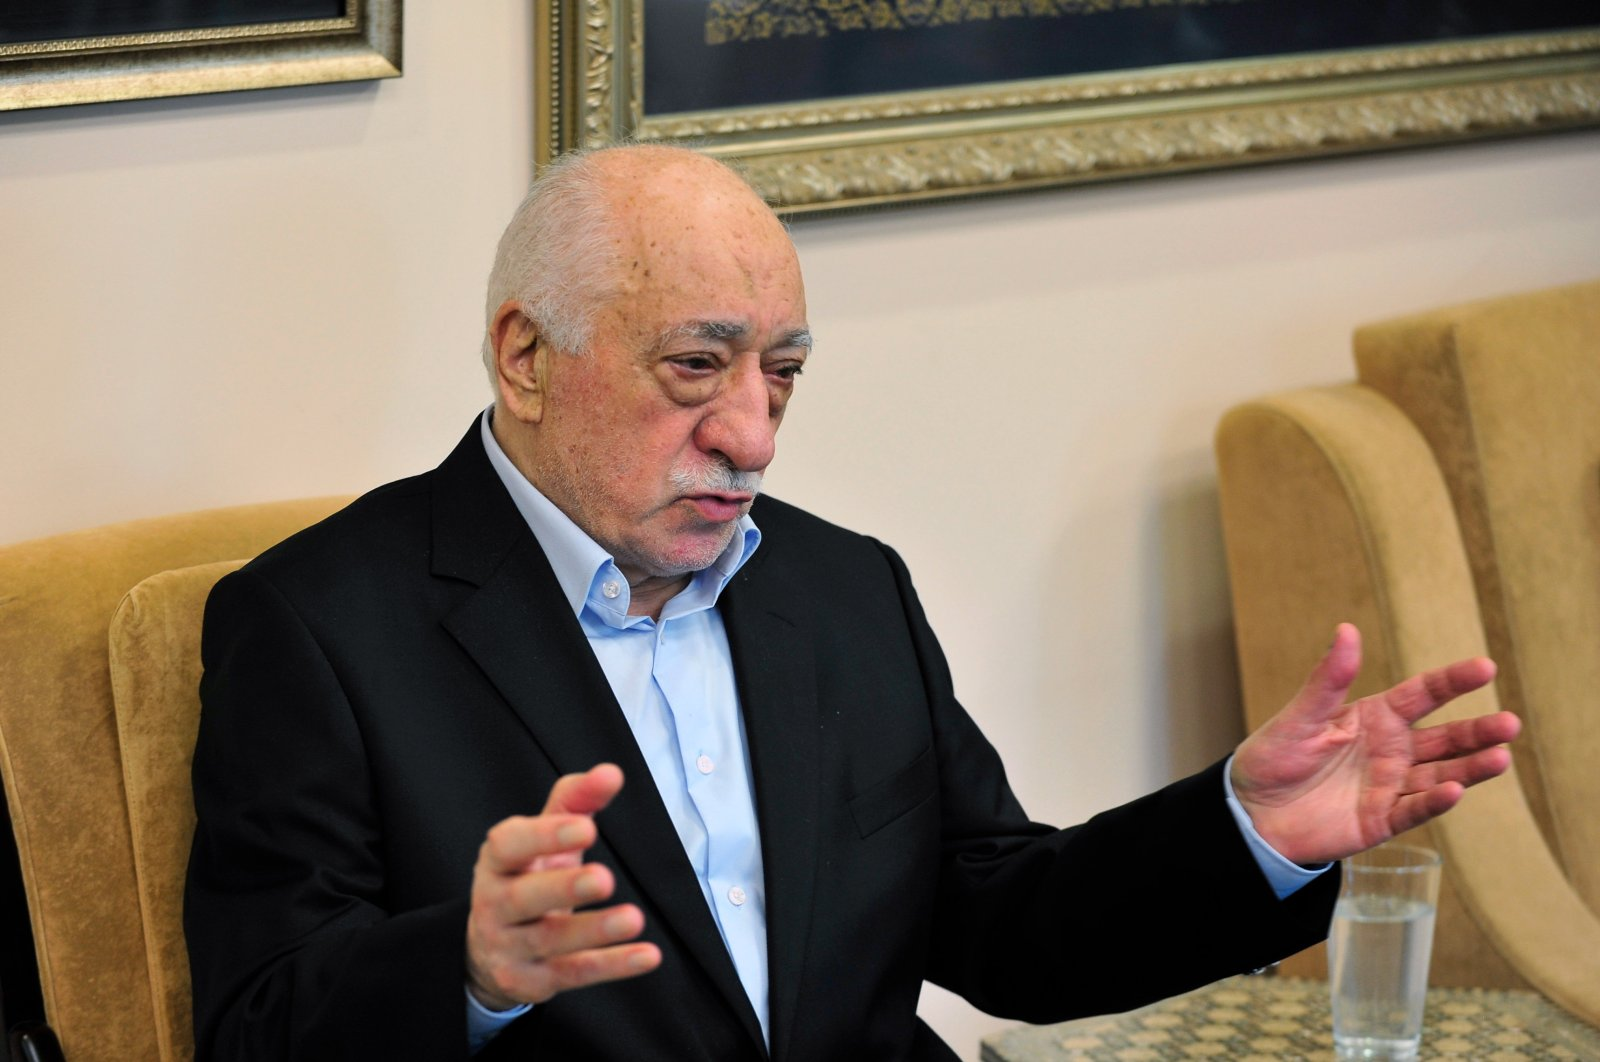 Fetullah Gülen speaks in his compound in Pennsylvania, U.S., July 17, 2016. Turkey has repeatedly requested his extradition from the United States but has failed to secure it so far. (AP PHOTO)